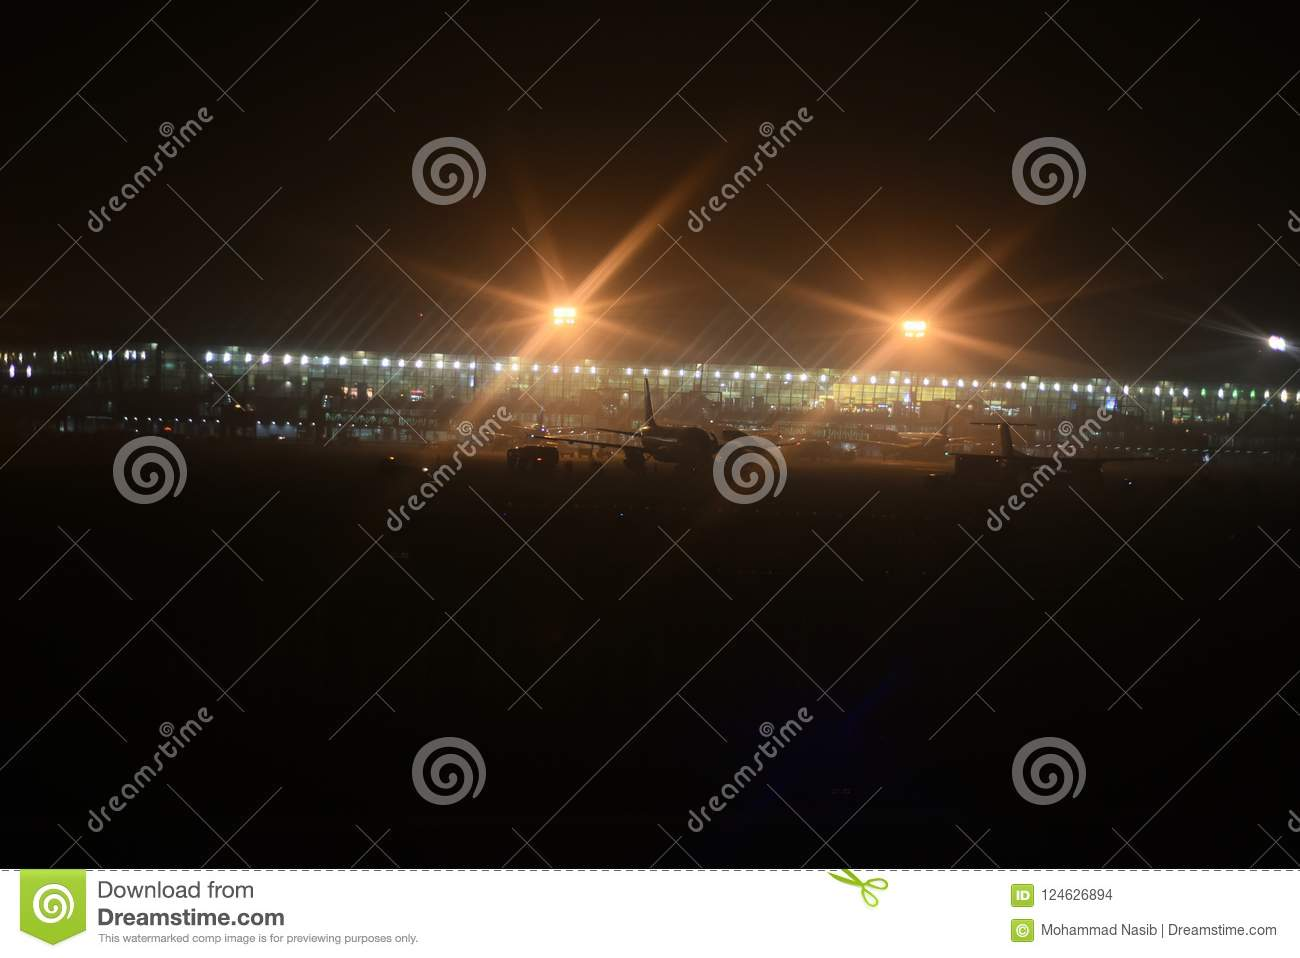 Download Beautiful Blurry Exterior Lights Of An Airport Unique Photo Stock Photo - Image of aviation, nightscene: 124626894